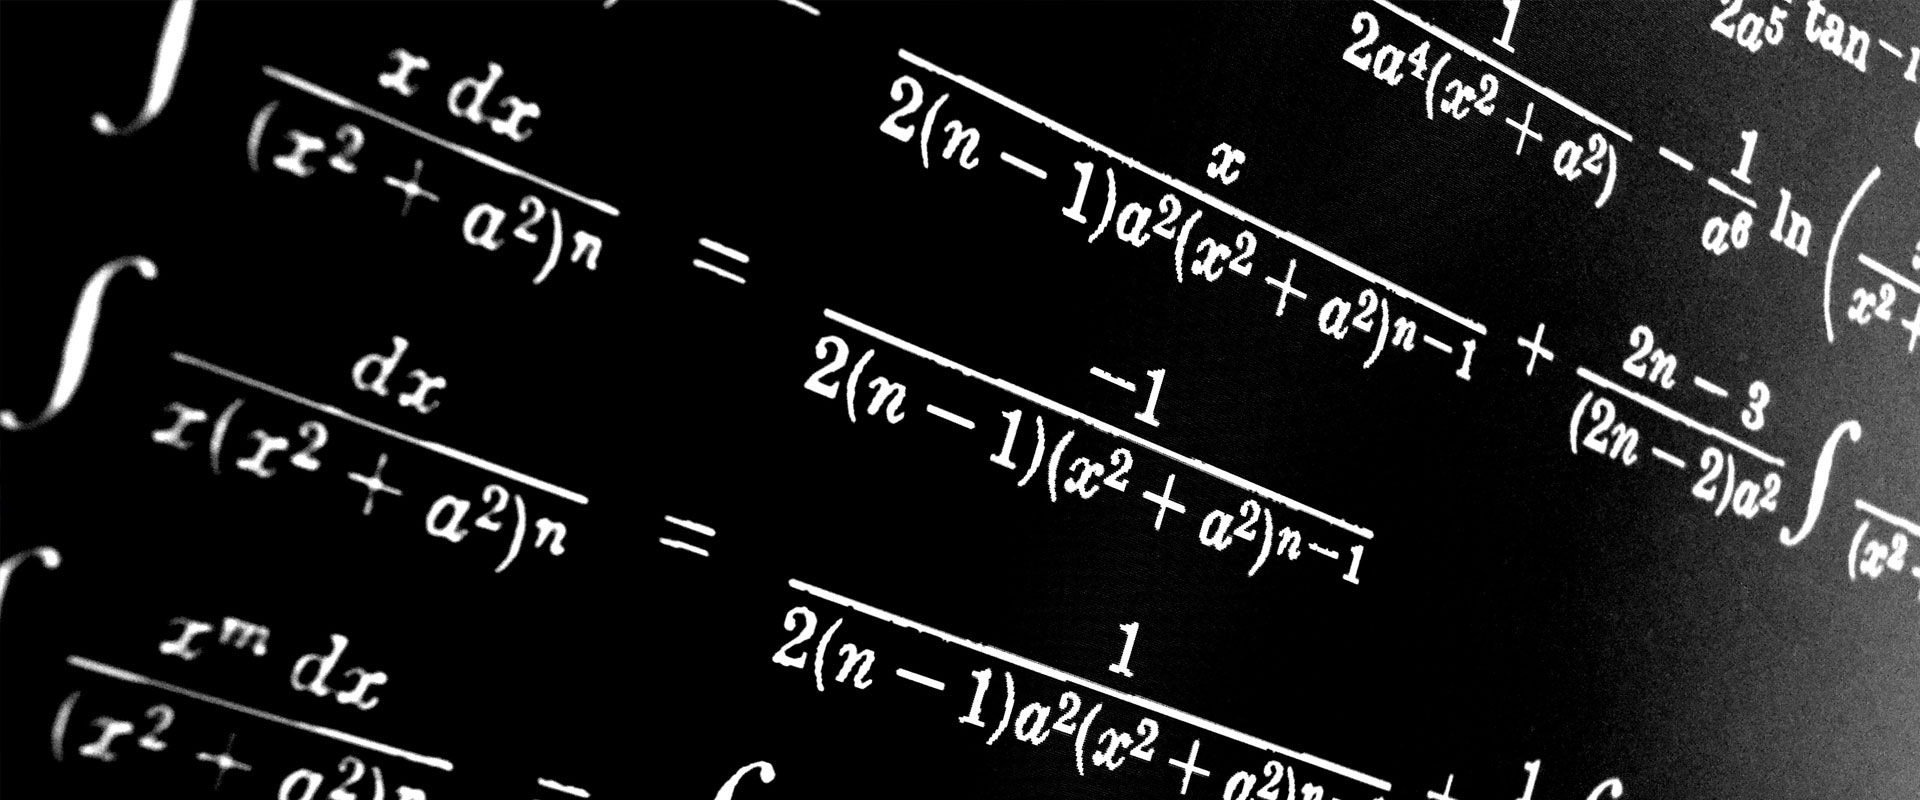 BSc in Applied Mathematics and Statistics – Financial Mathematics Concentration